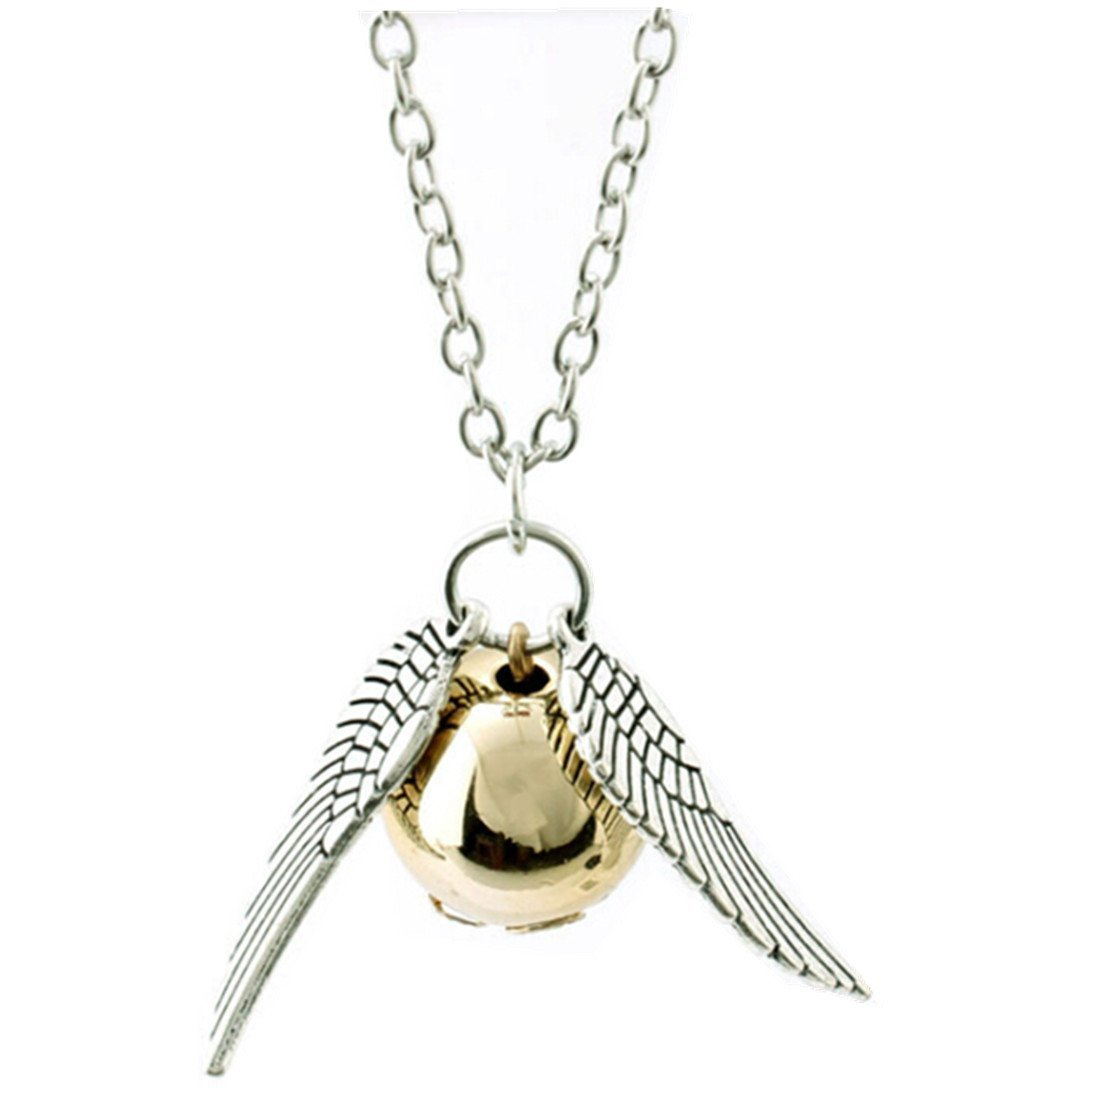 ANKRY Fairy Jewelry Harry Potter Golden Snitch Quicksilver Golden Pearl Necklace